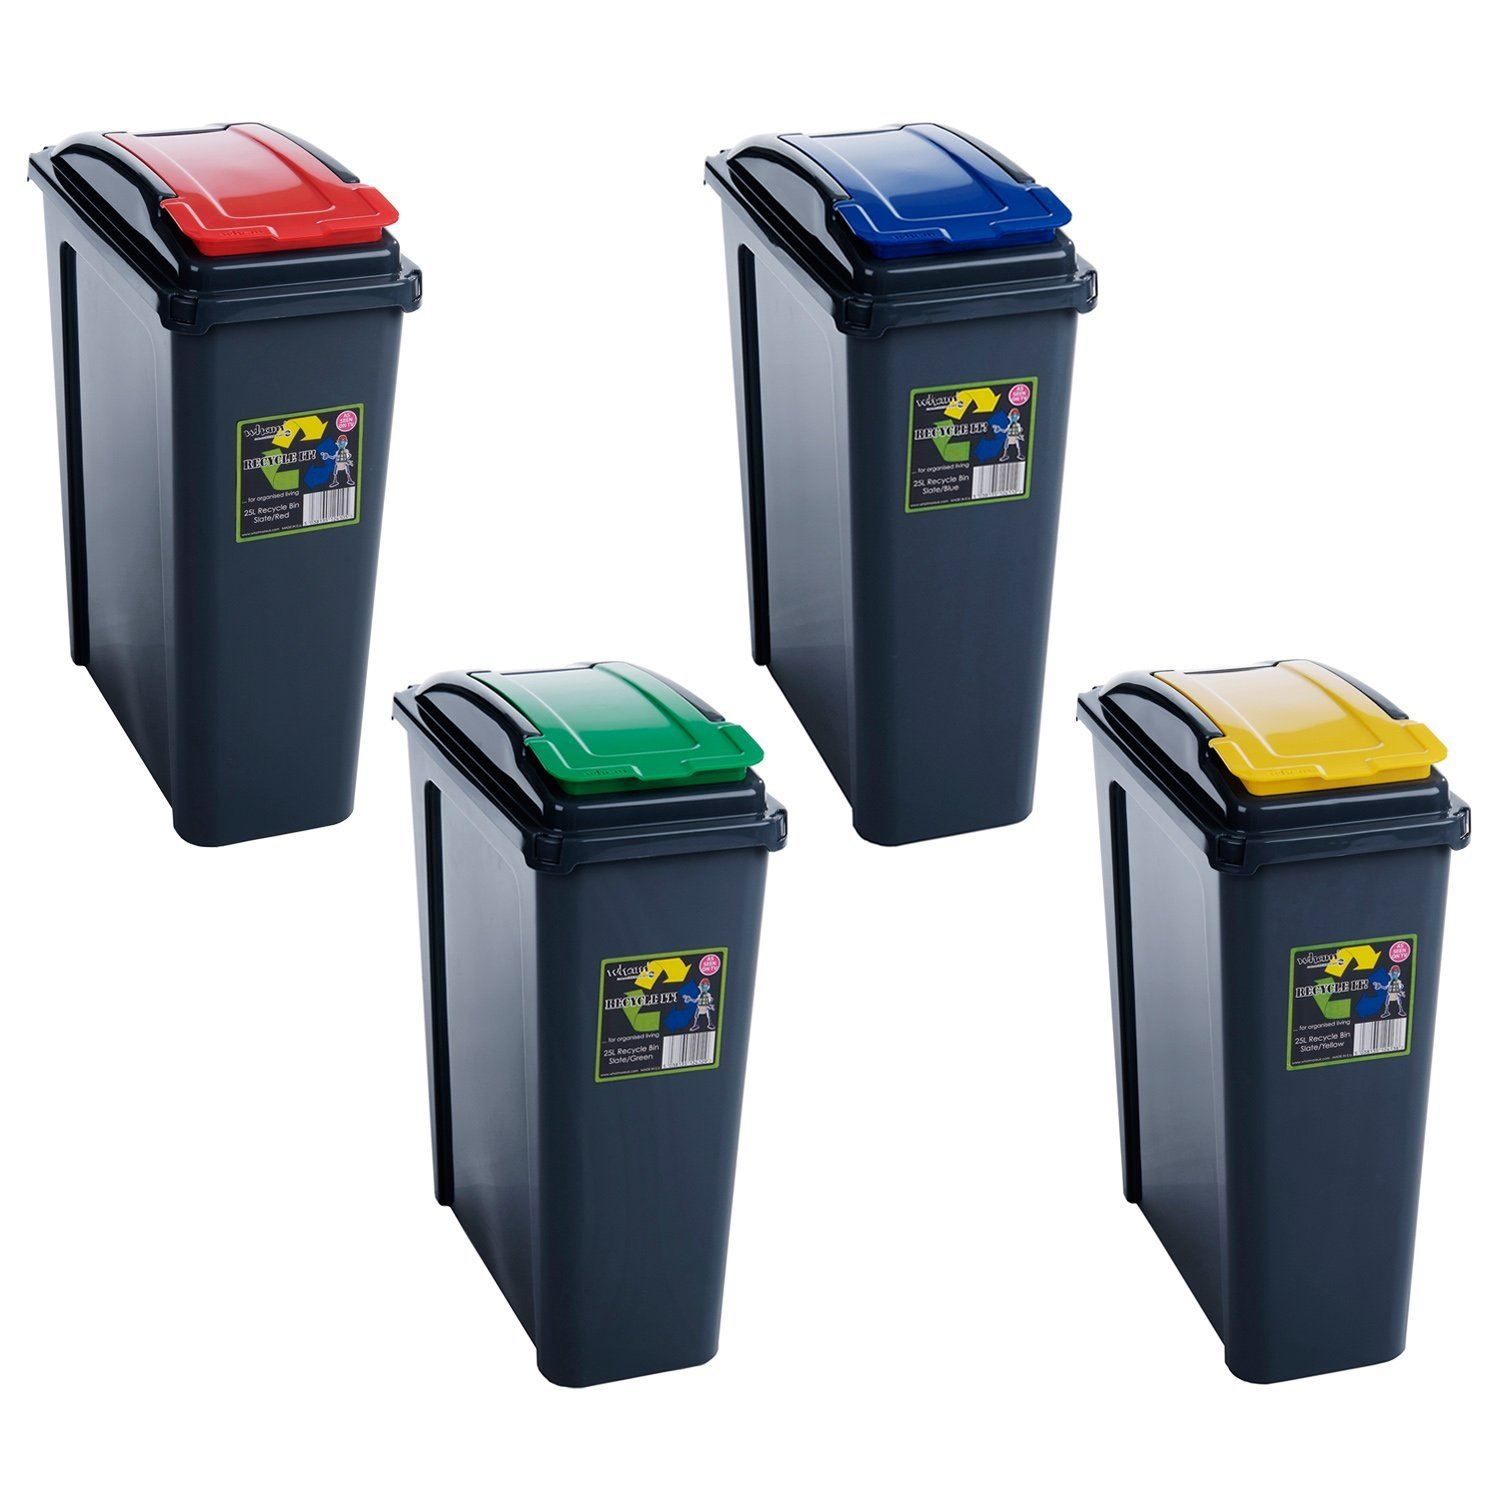 Kitchen Waste Bins: 25L 50L Plastic Recycle Recycling Bin Lid Kitchen Rubbish